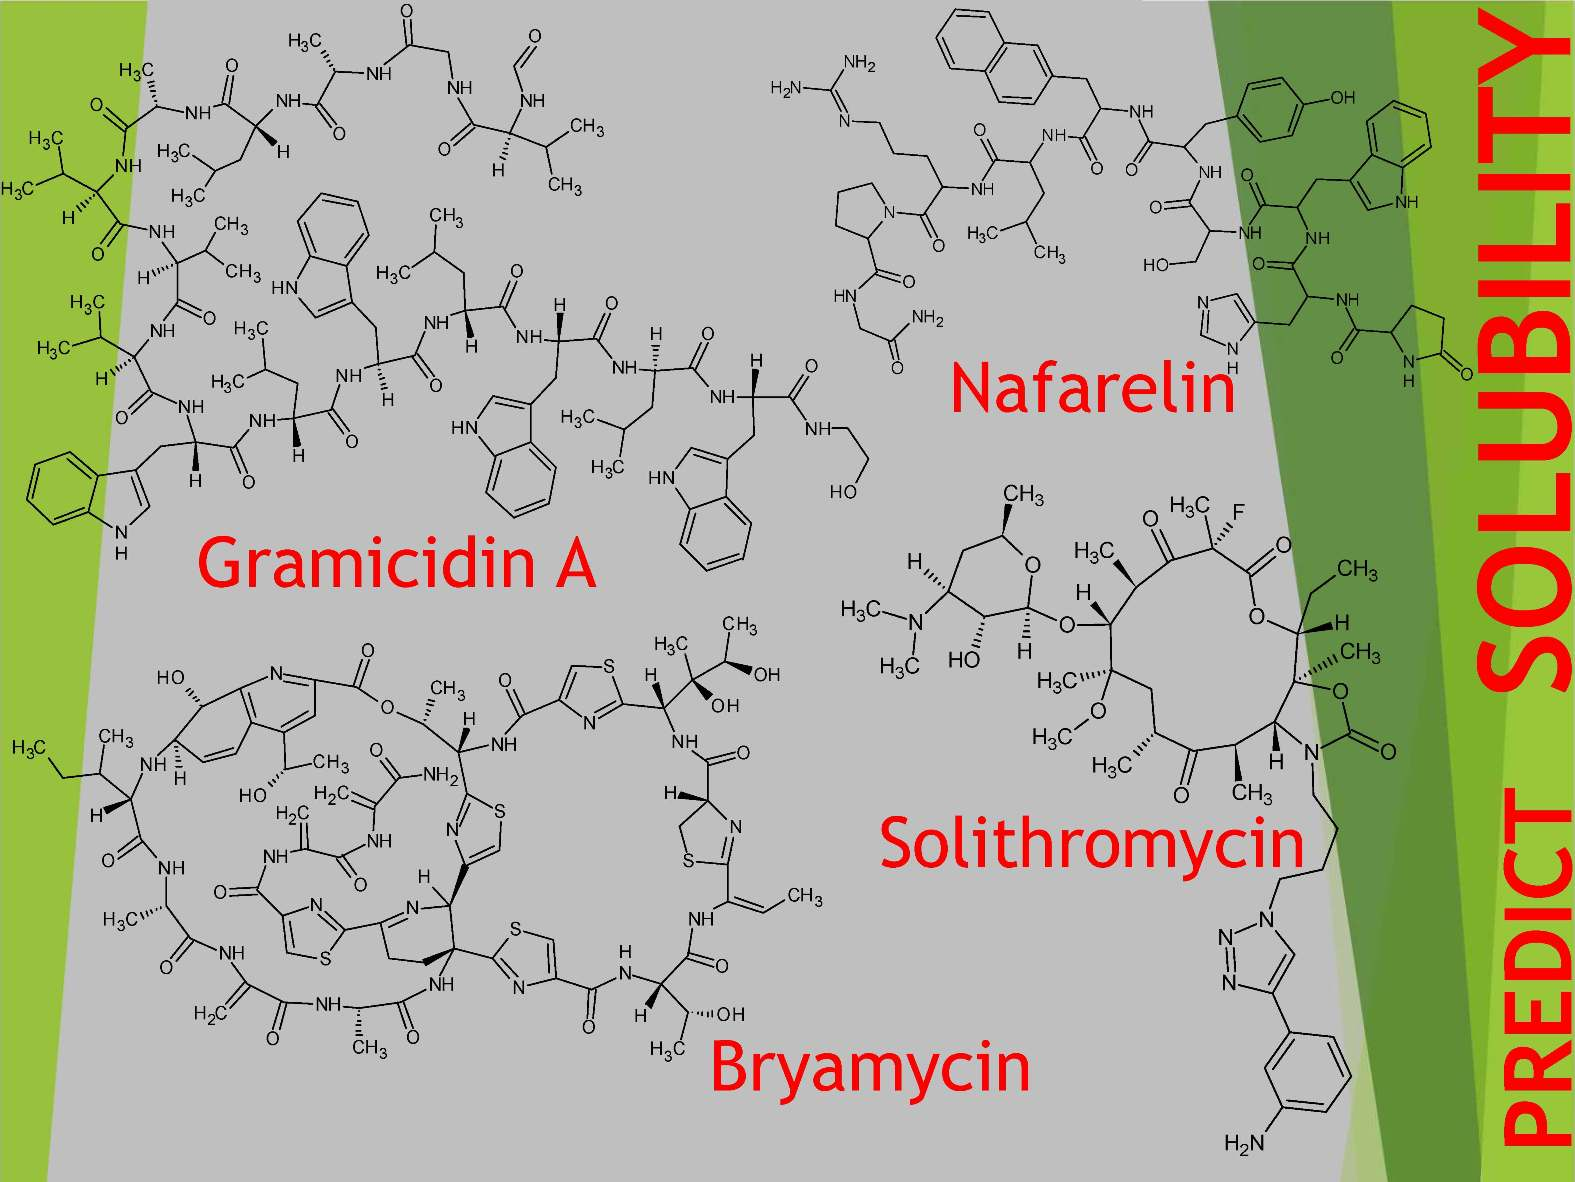 Can small drugs predict the intrinsic aqueous solubility of 'beyond Rule of 5' big drugs?